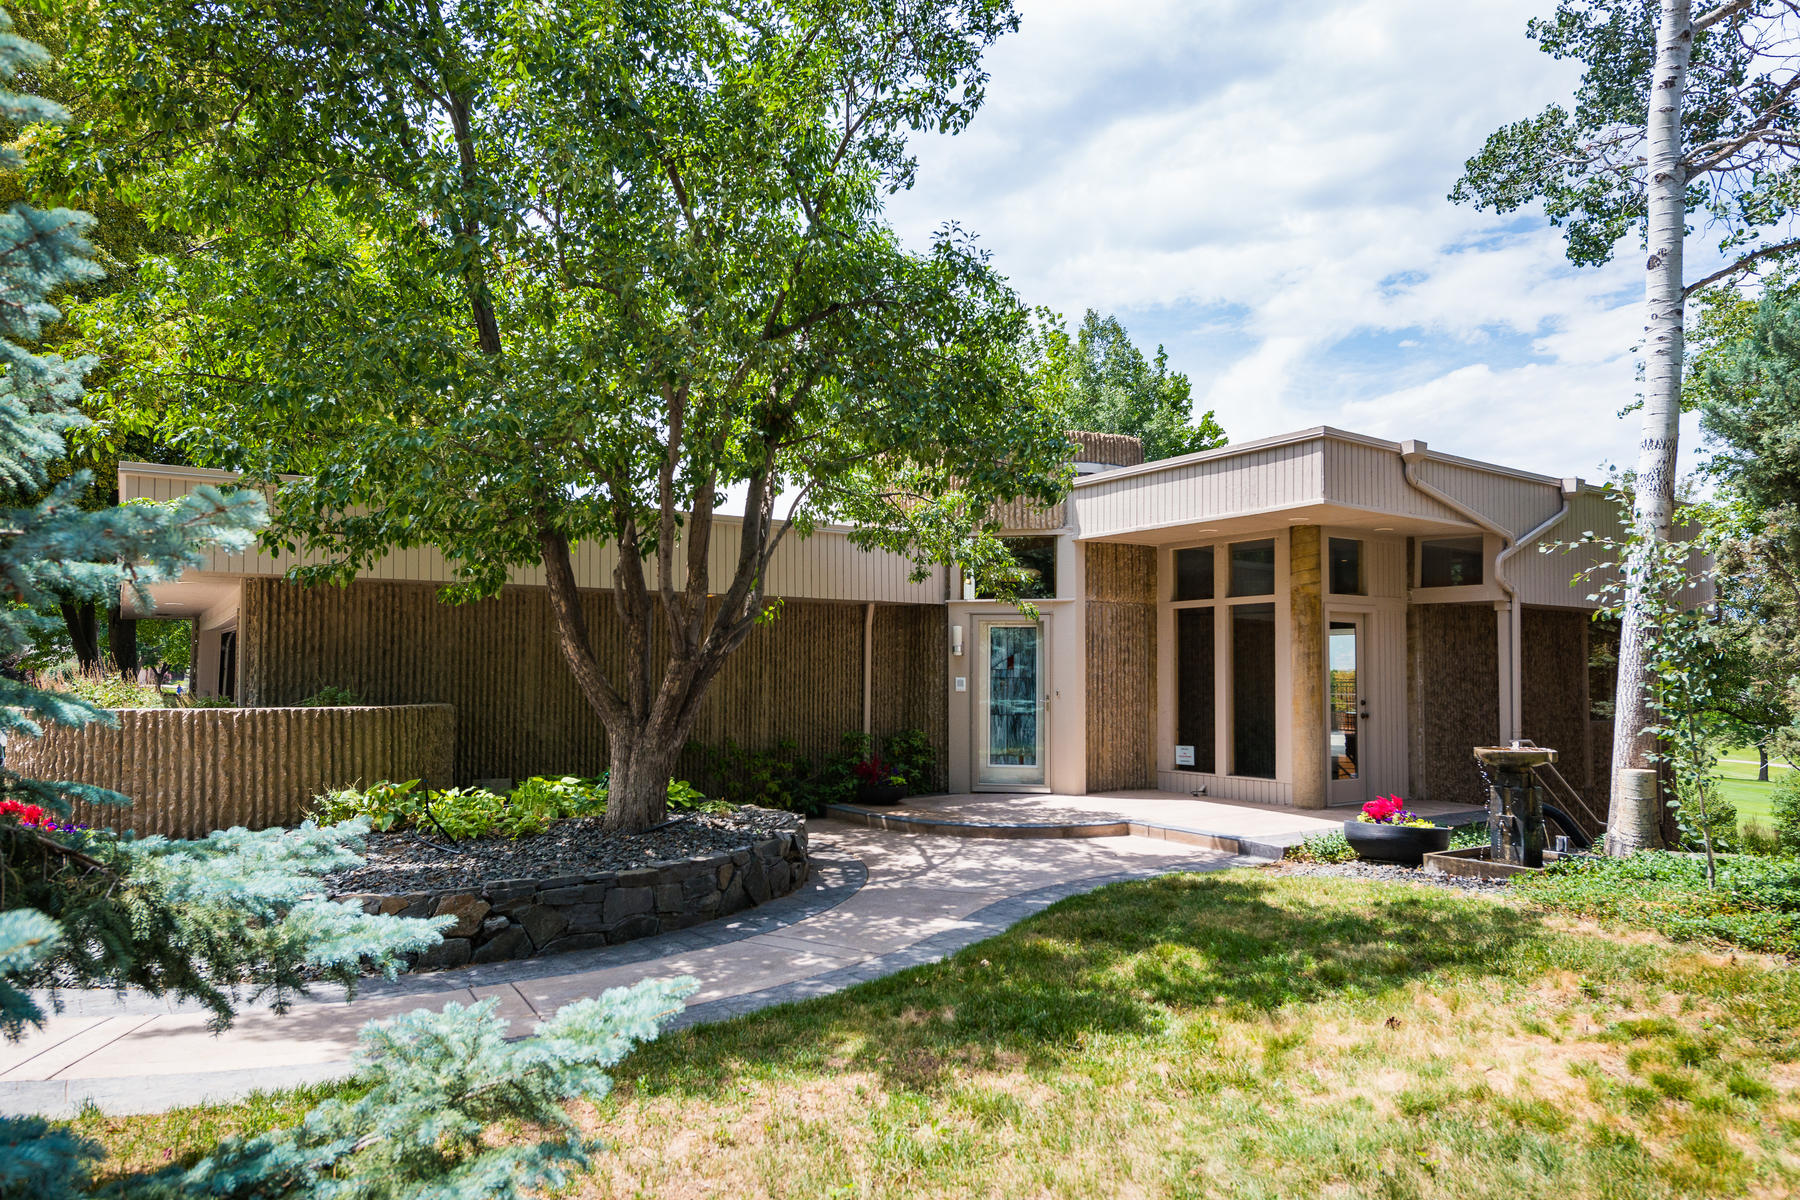 Single Family Homes for Sale at Rare opportunity to own this architecturally significant home! 11339 Quivas Way Westminster, Colorado 80234 United States